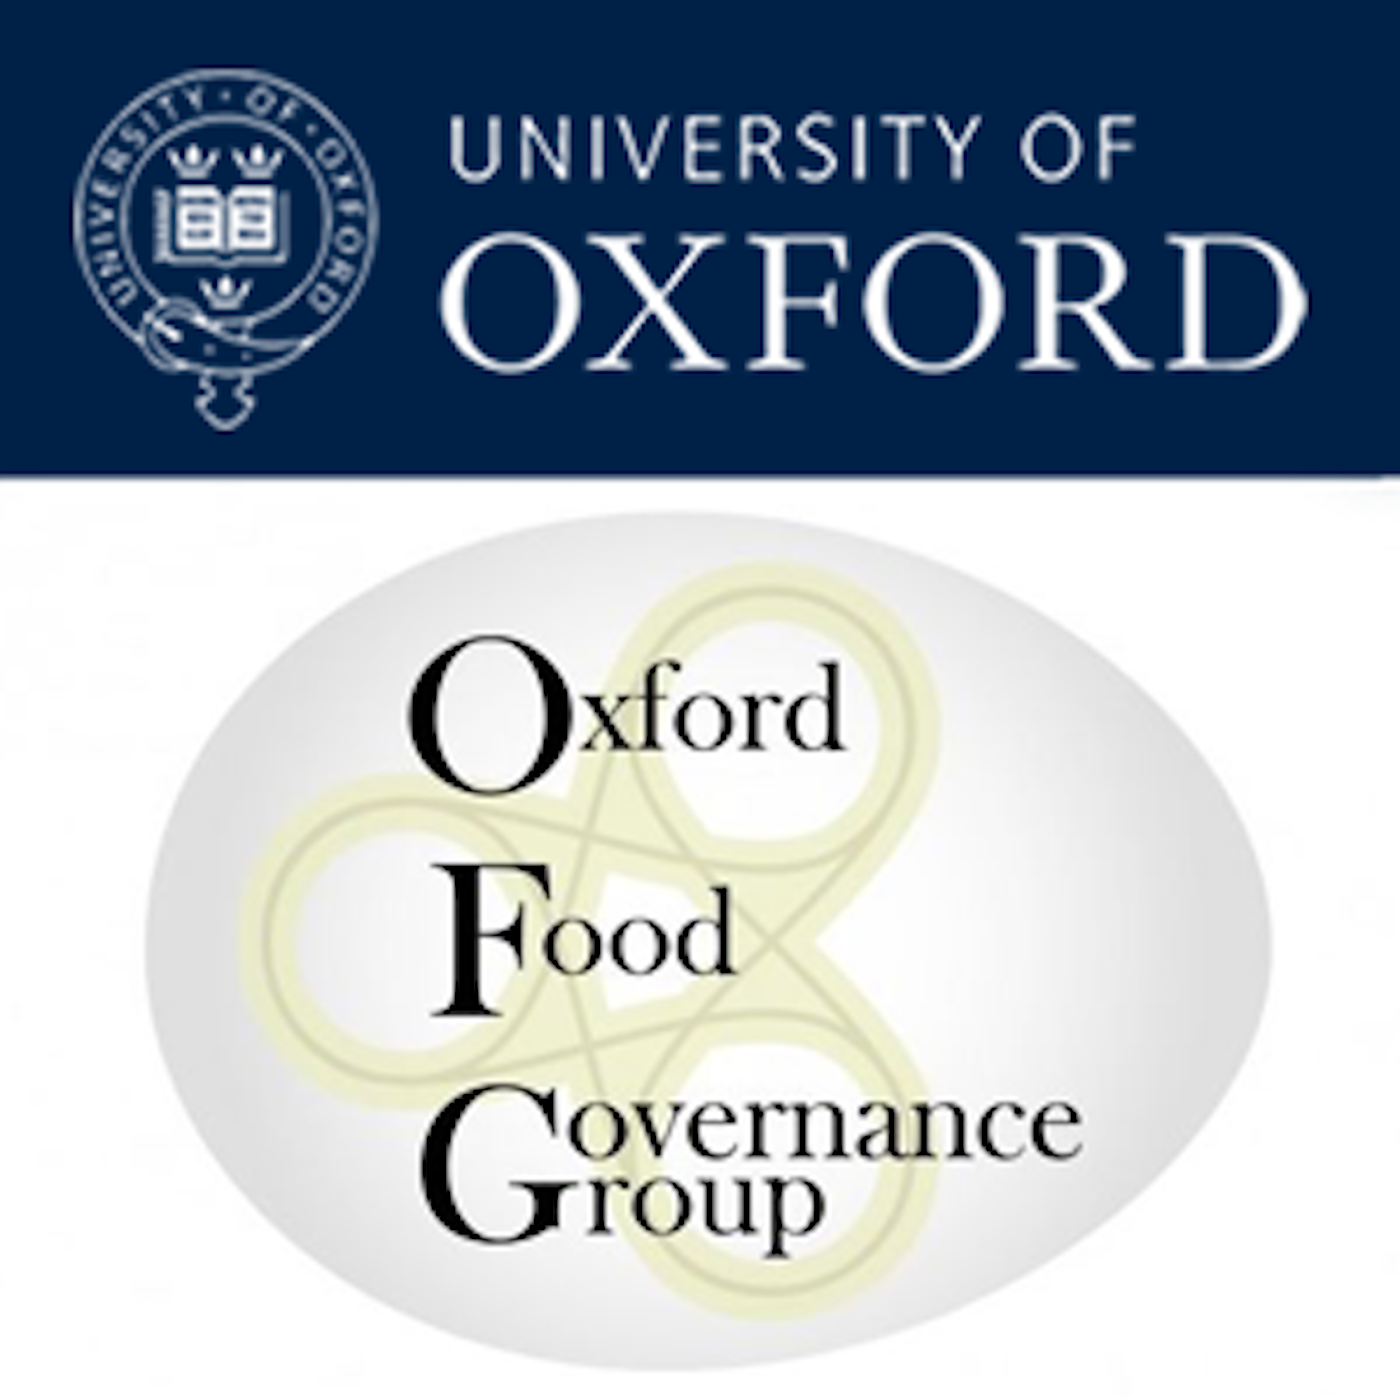 Sustainability and governance of the food supply